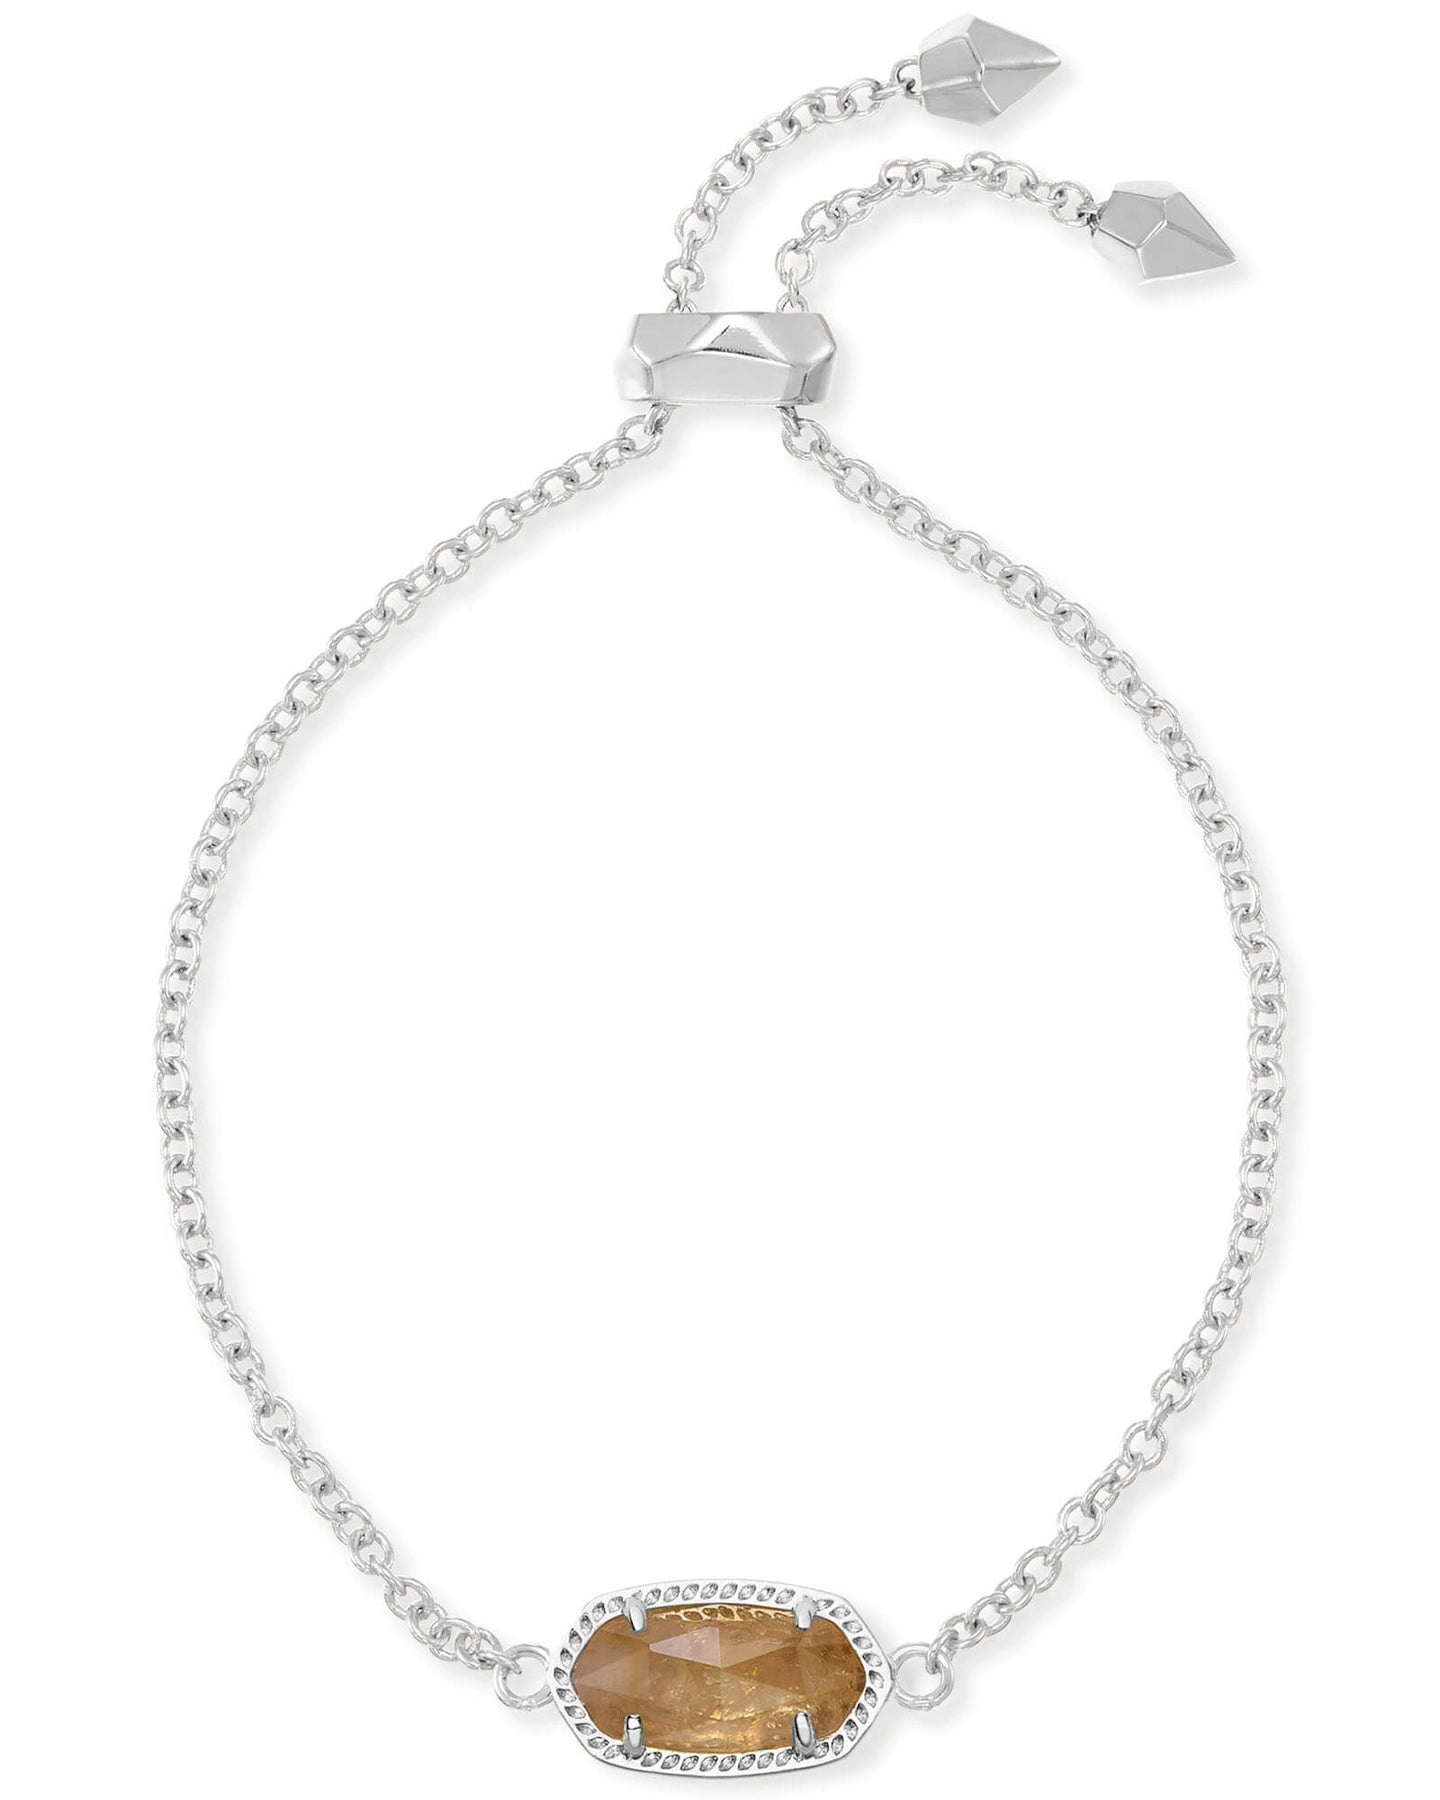 Kendra Scott Elaina Bracelet - Rhodium Orange Citrine Quartz